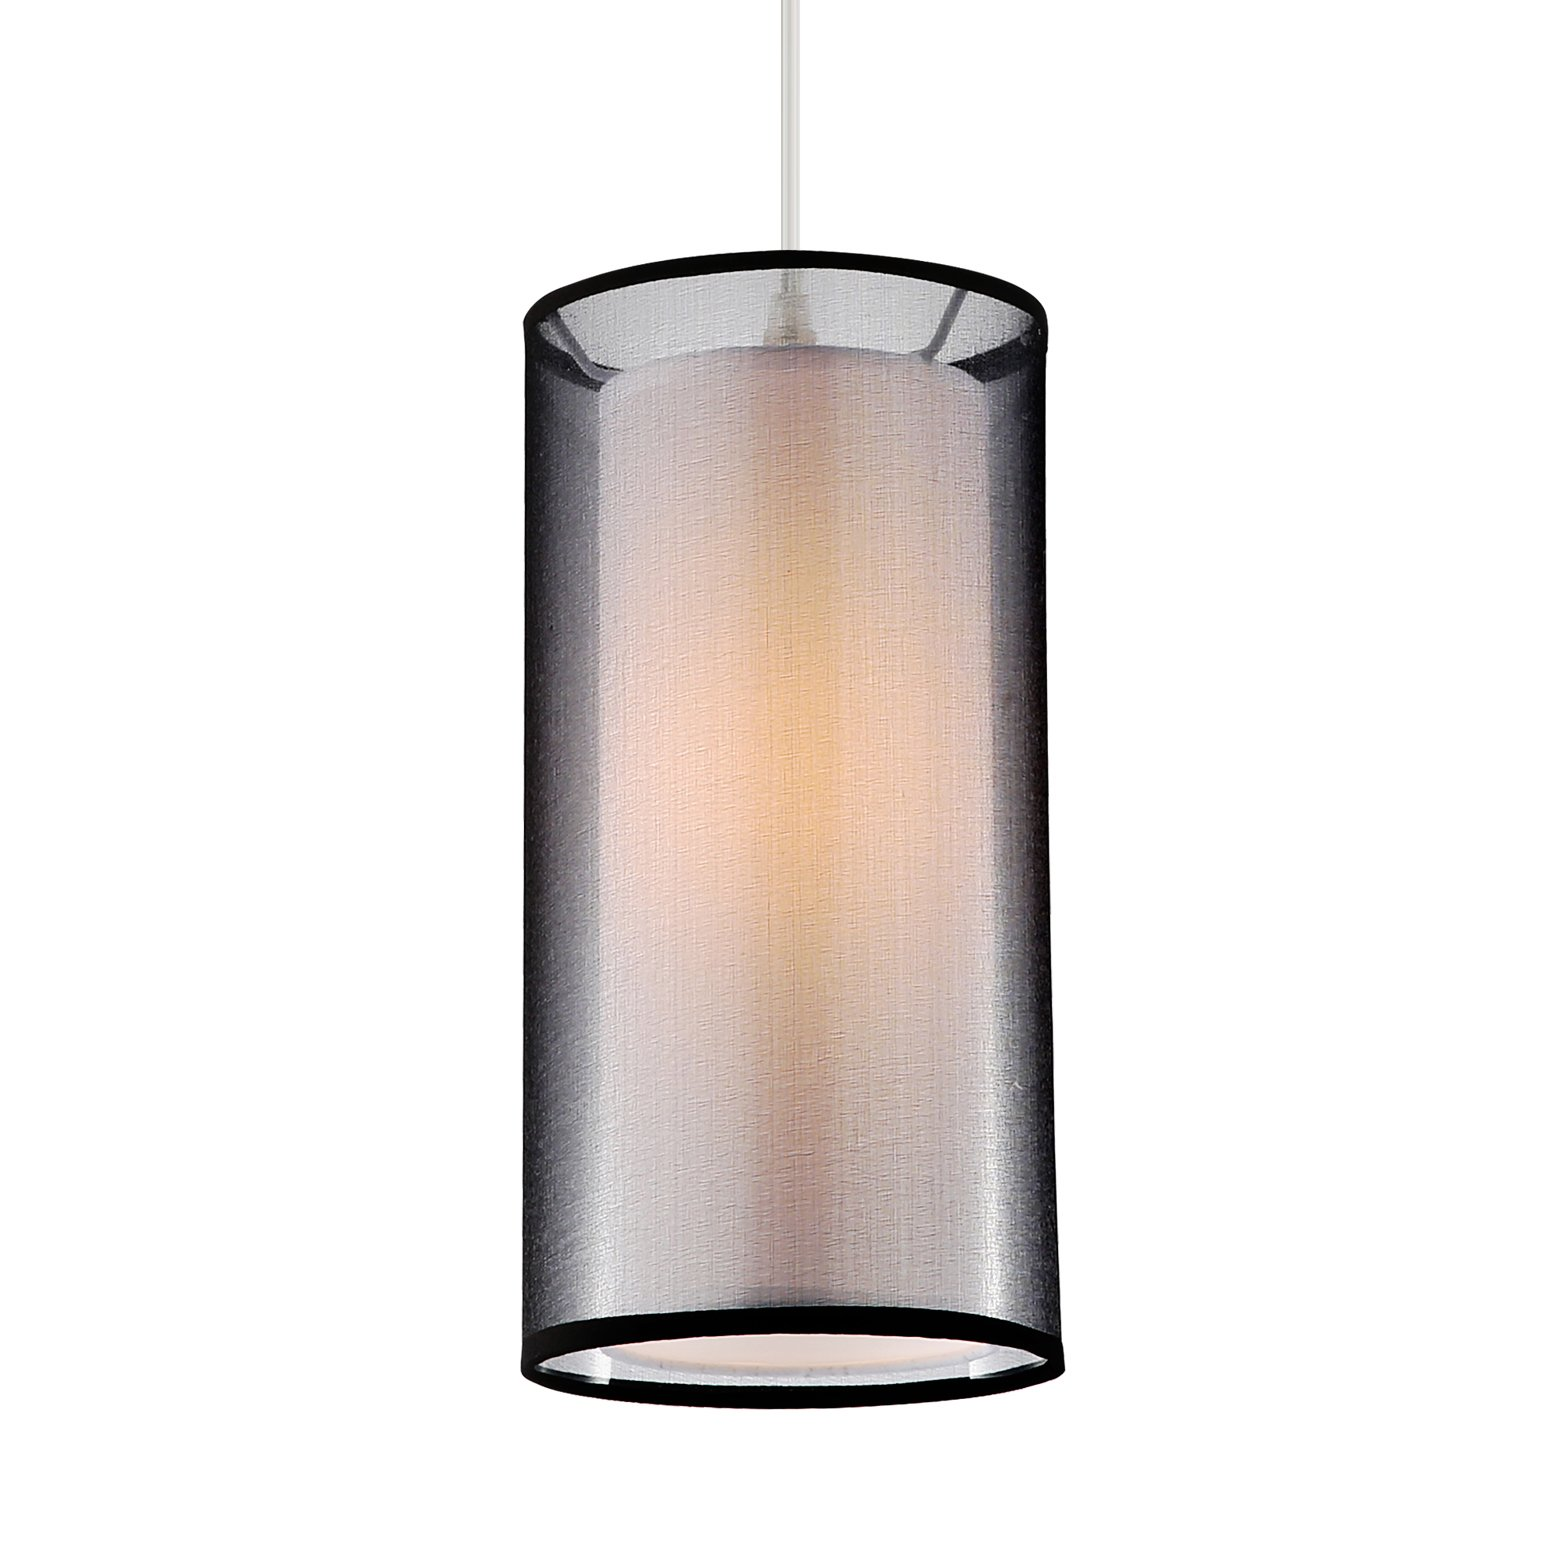 Light Society Medio Cylindrical Pendant Light, Black Double Fabric Shade, Contemporary Minimalist Modern Lighting Fixture (LS-C240-BK)